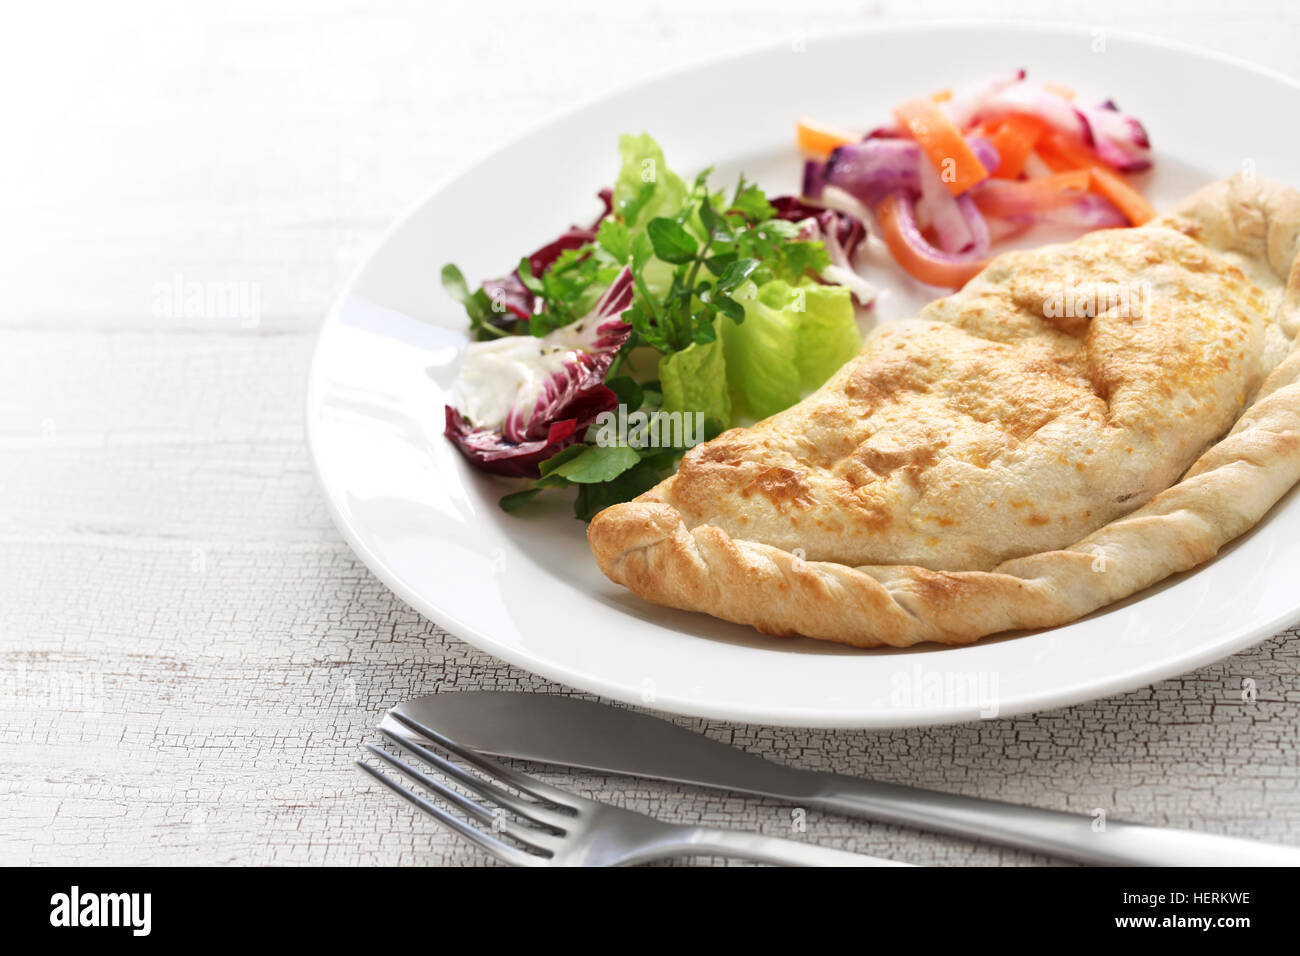 calzone, folded stuffed pizza, italian food - Stock Image